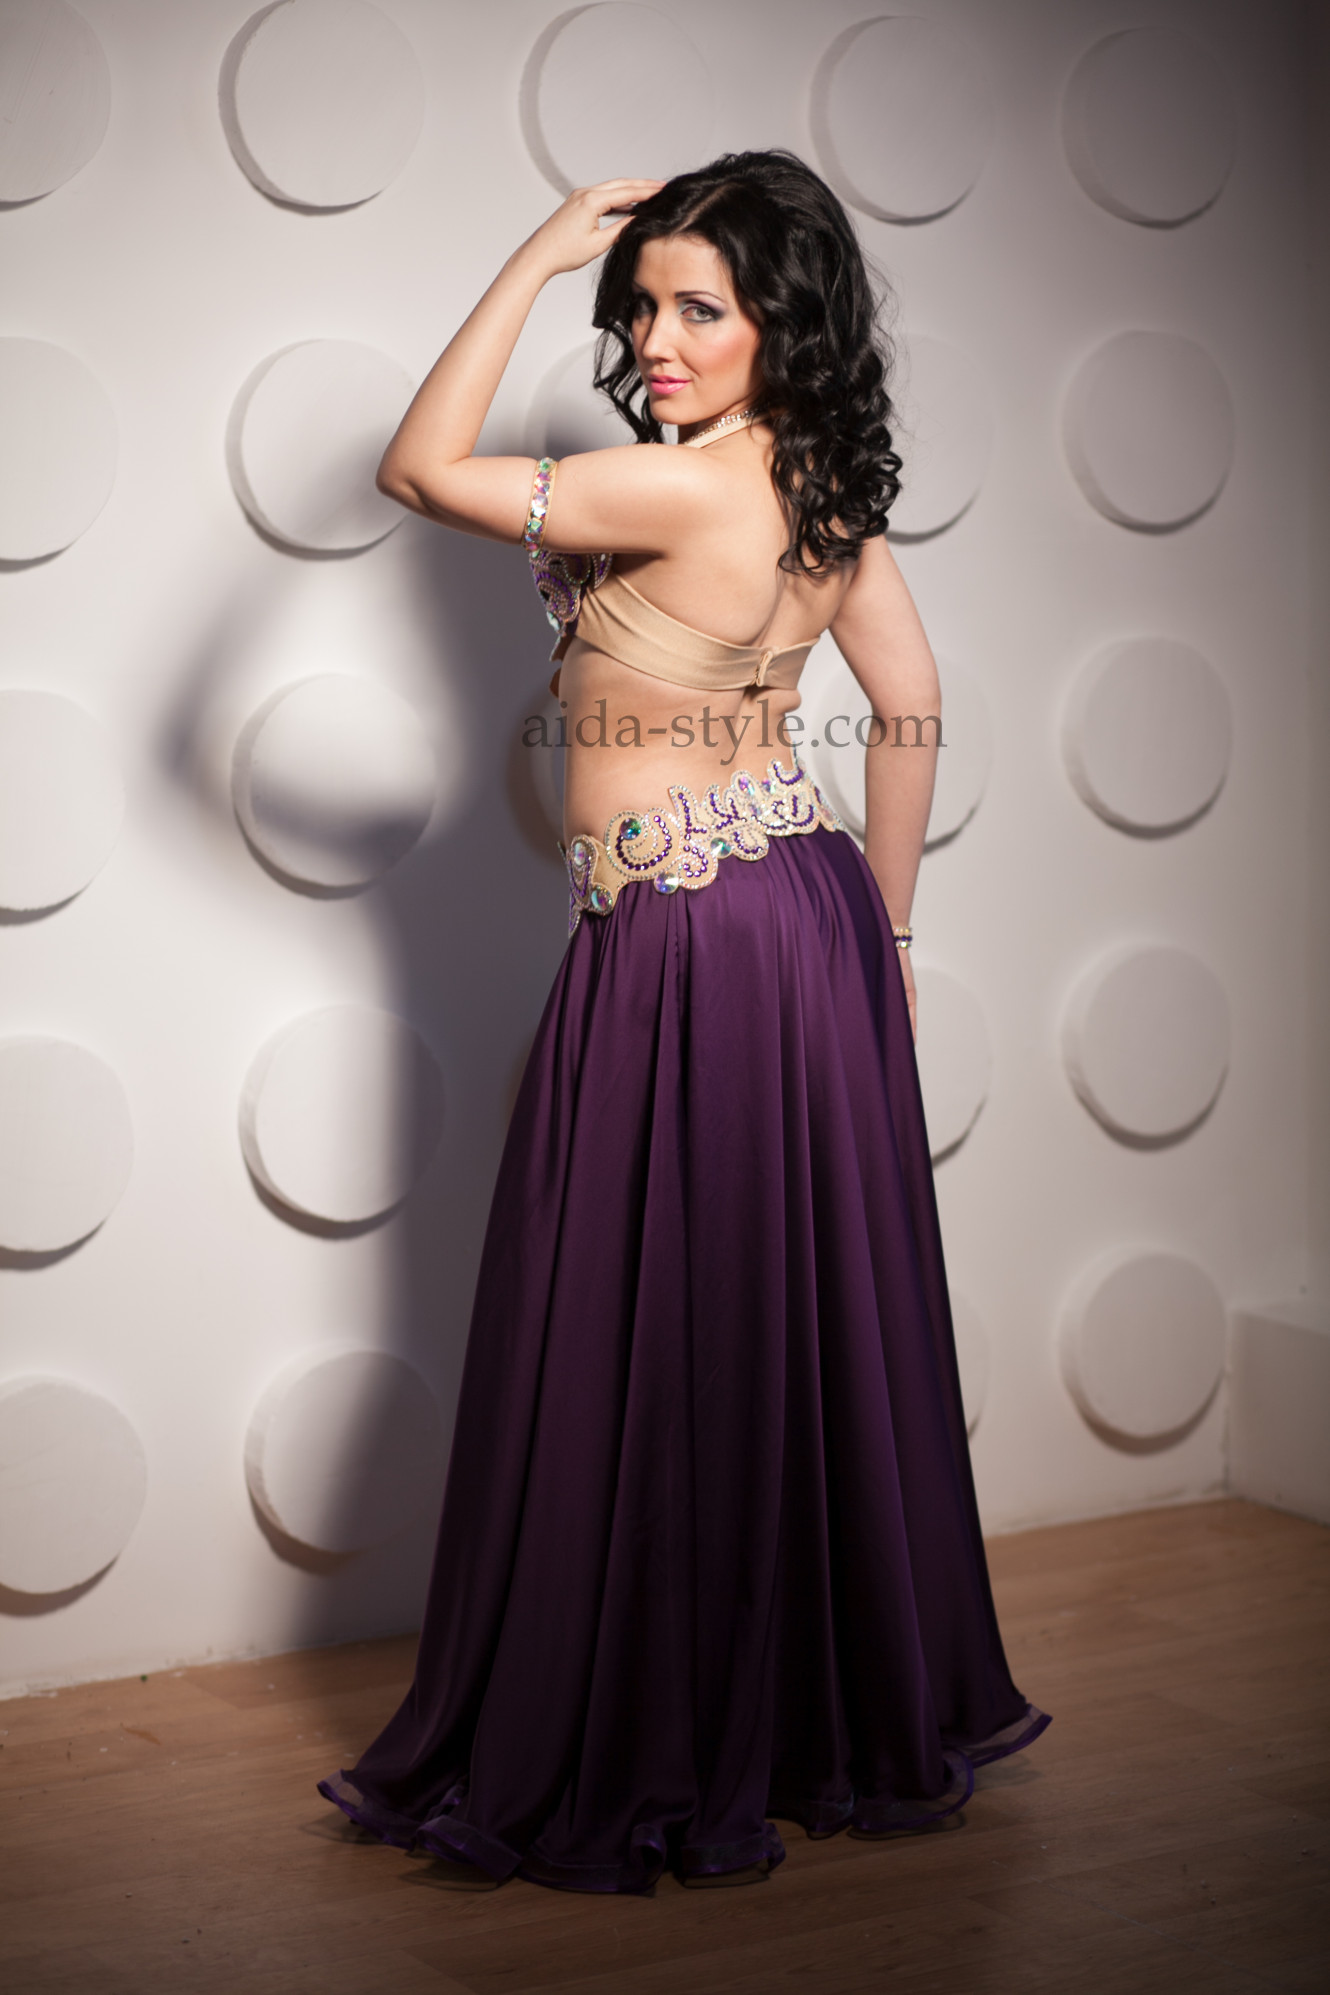 Professional belly dance costume in dark purple color. Bouffant skirt is made from light silky fabric. Belt and bra have bright shiny applications